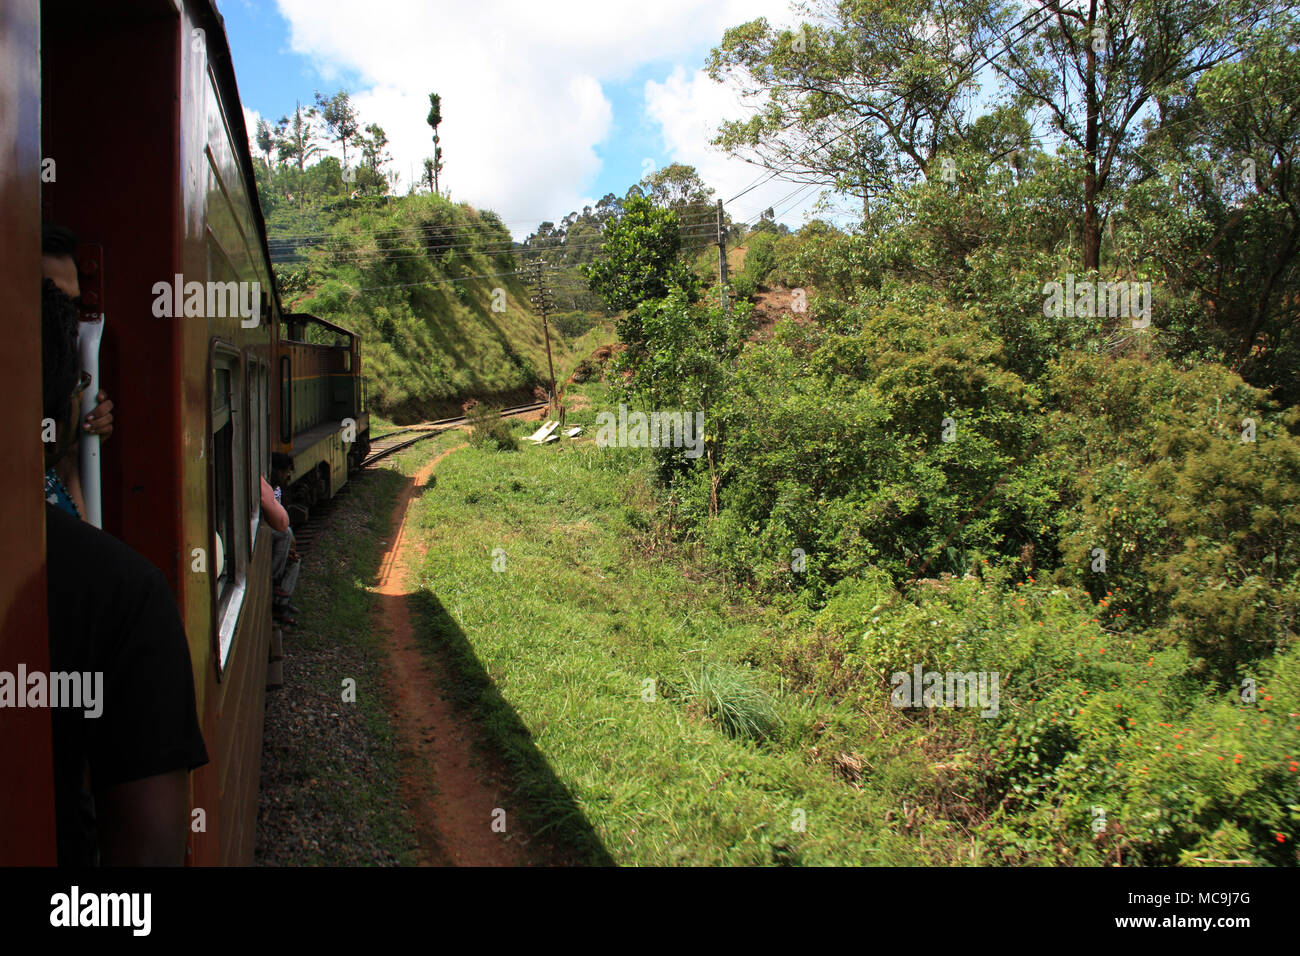 Taking a scenic train ride from Ella to Kandy, passing some tropical vegetation - Stock Image